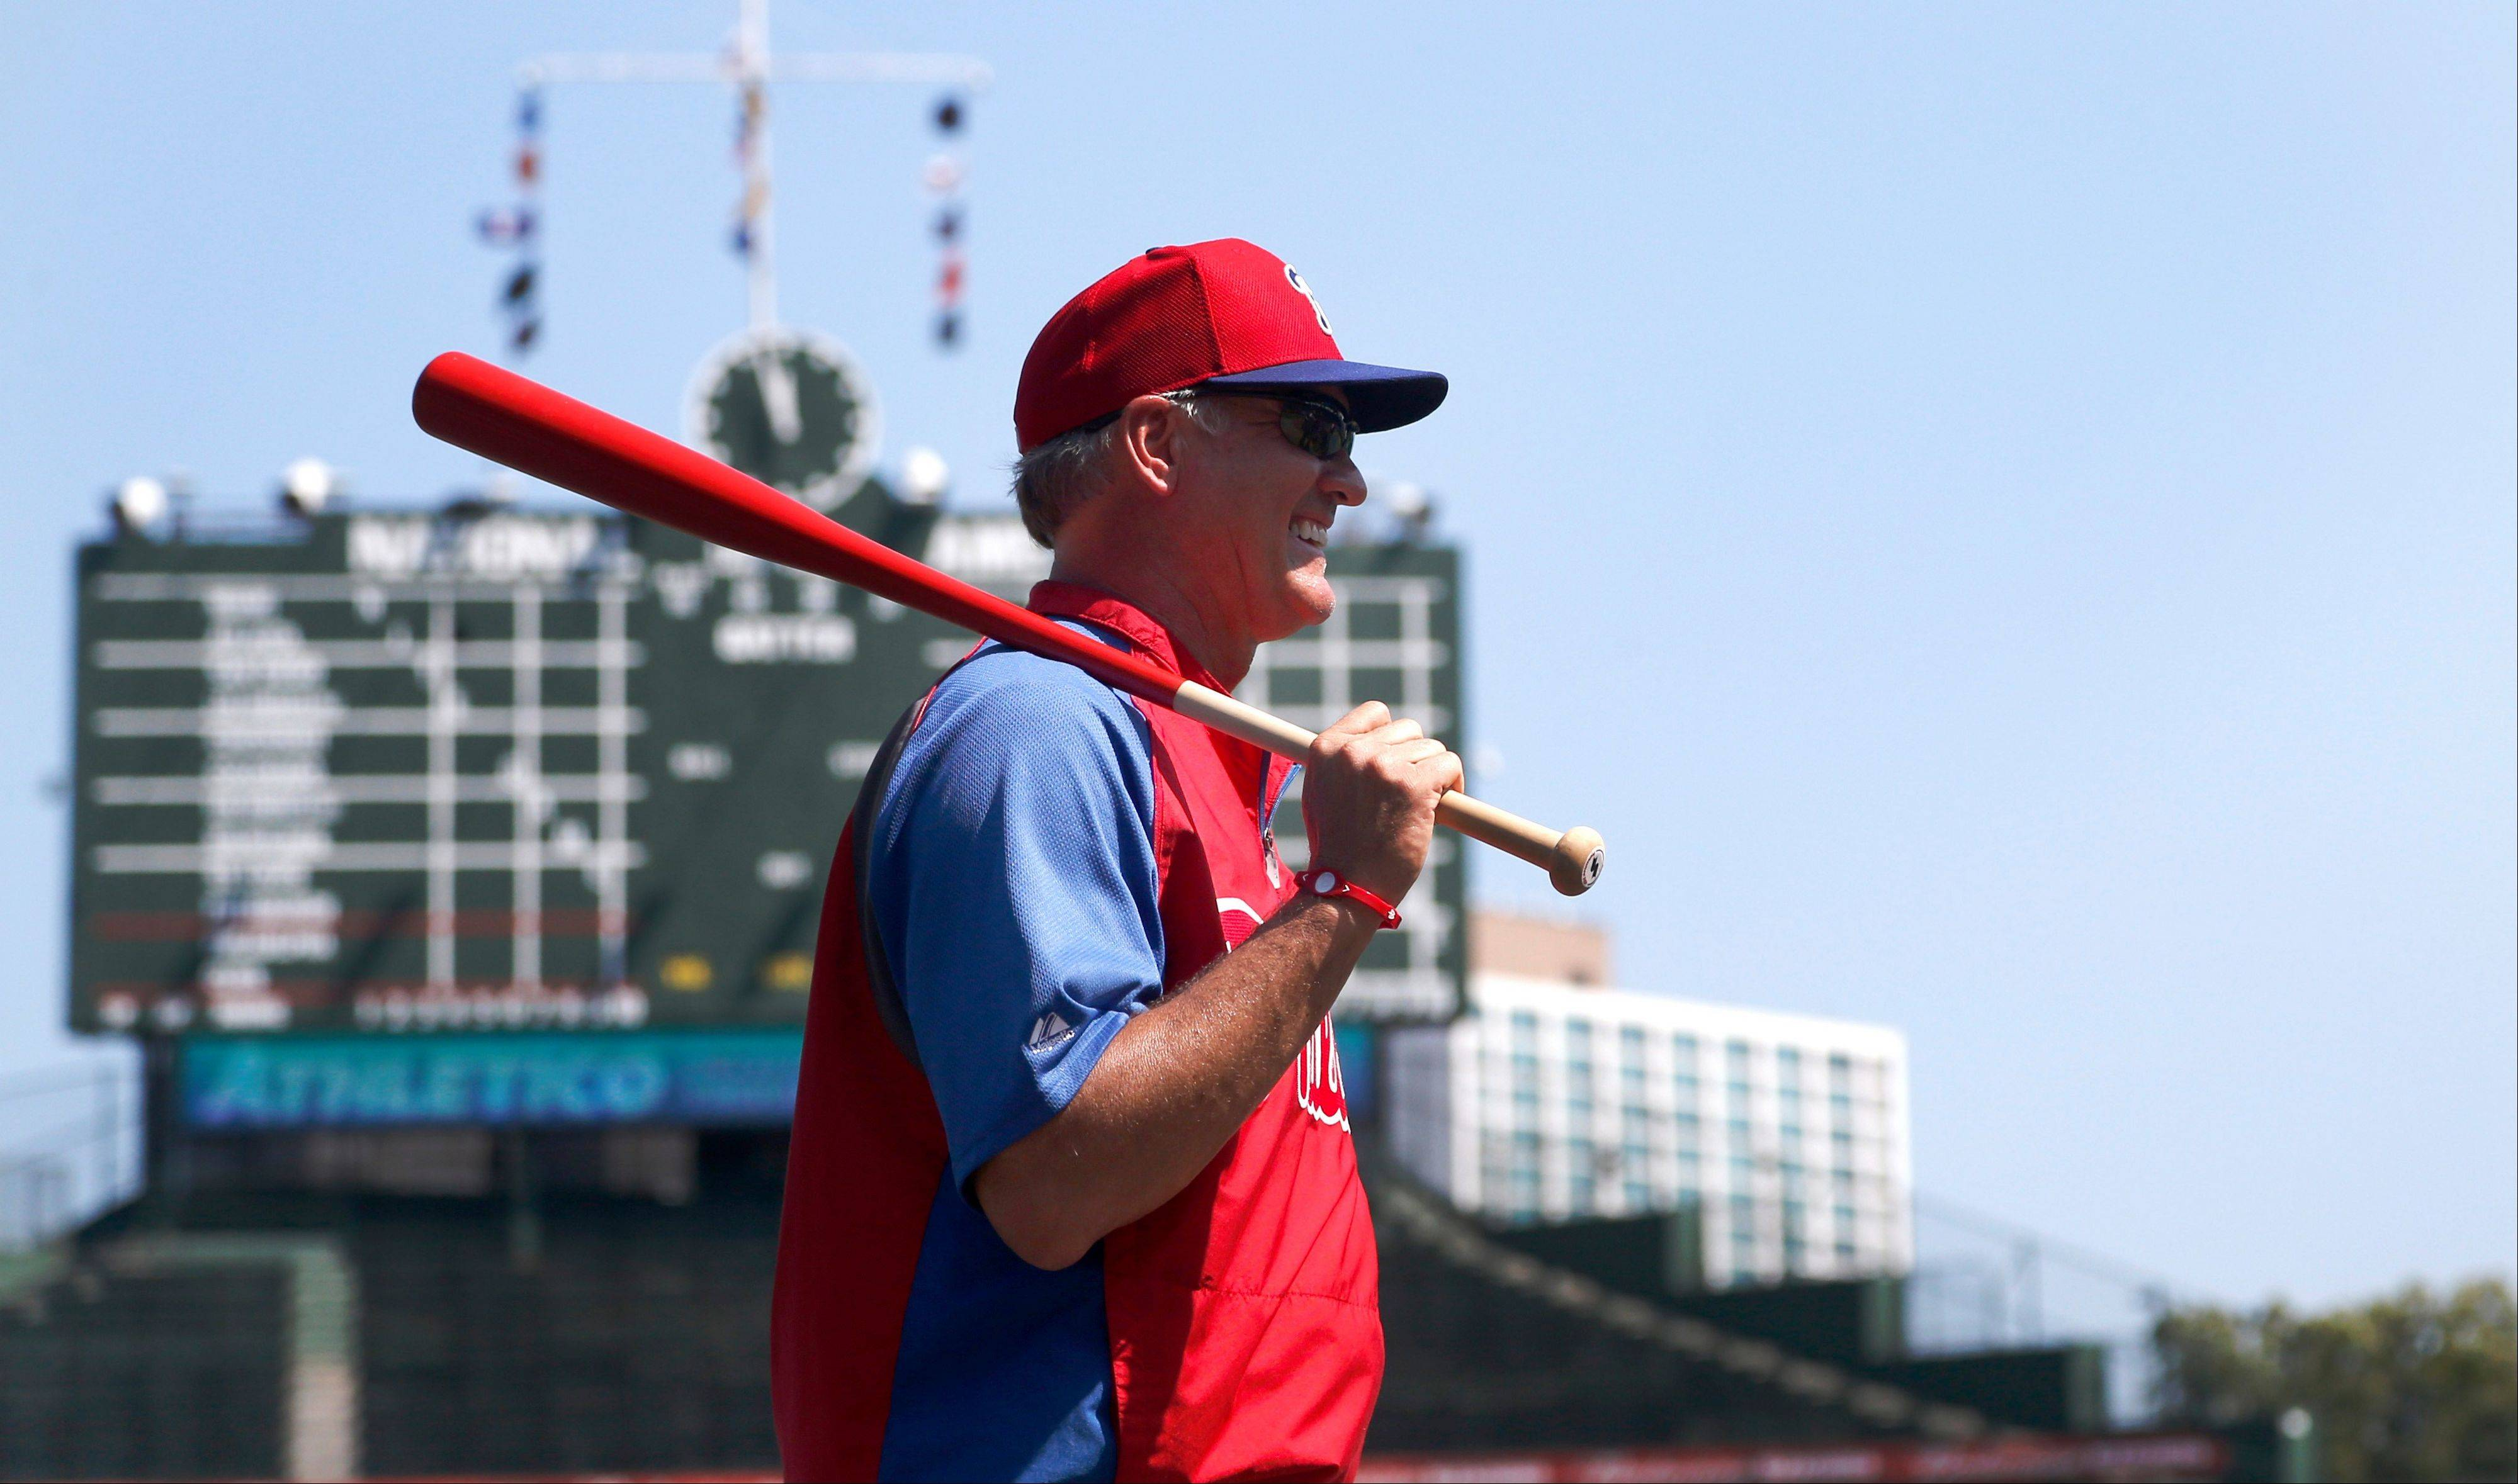 The Cubs will host their home opener on April 4 against the Philadelphia Phillies, who are now led by interim manager Ryne Sandberg. The Cubs will open the MLB season on the road against Pittsburgh.